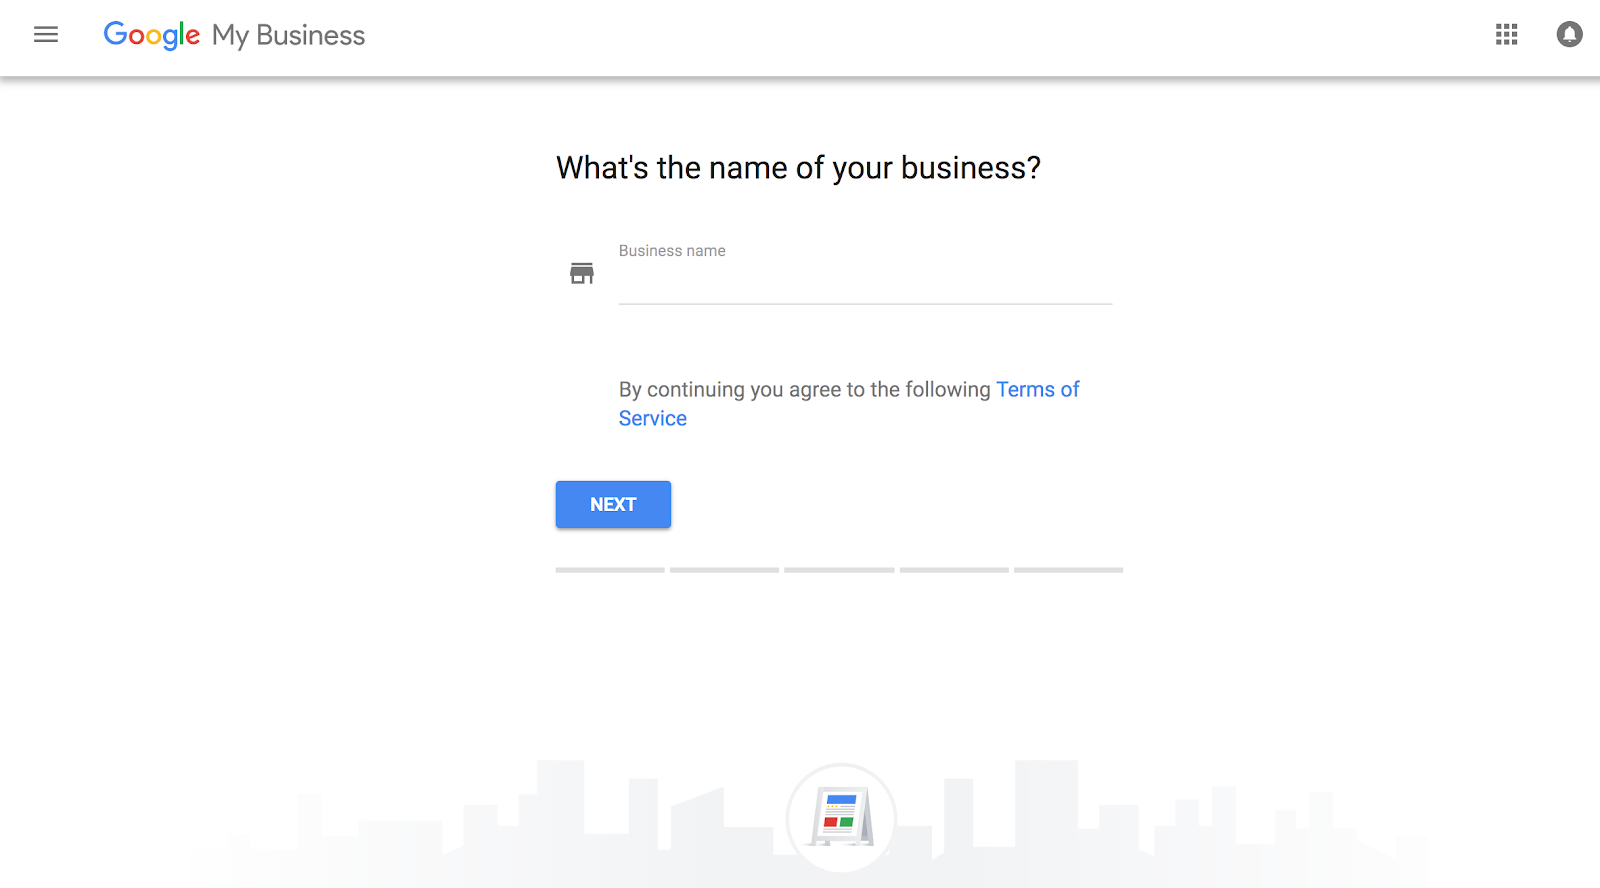 Google My Business - Business Name